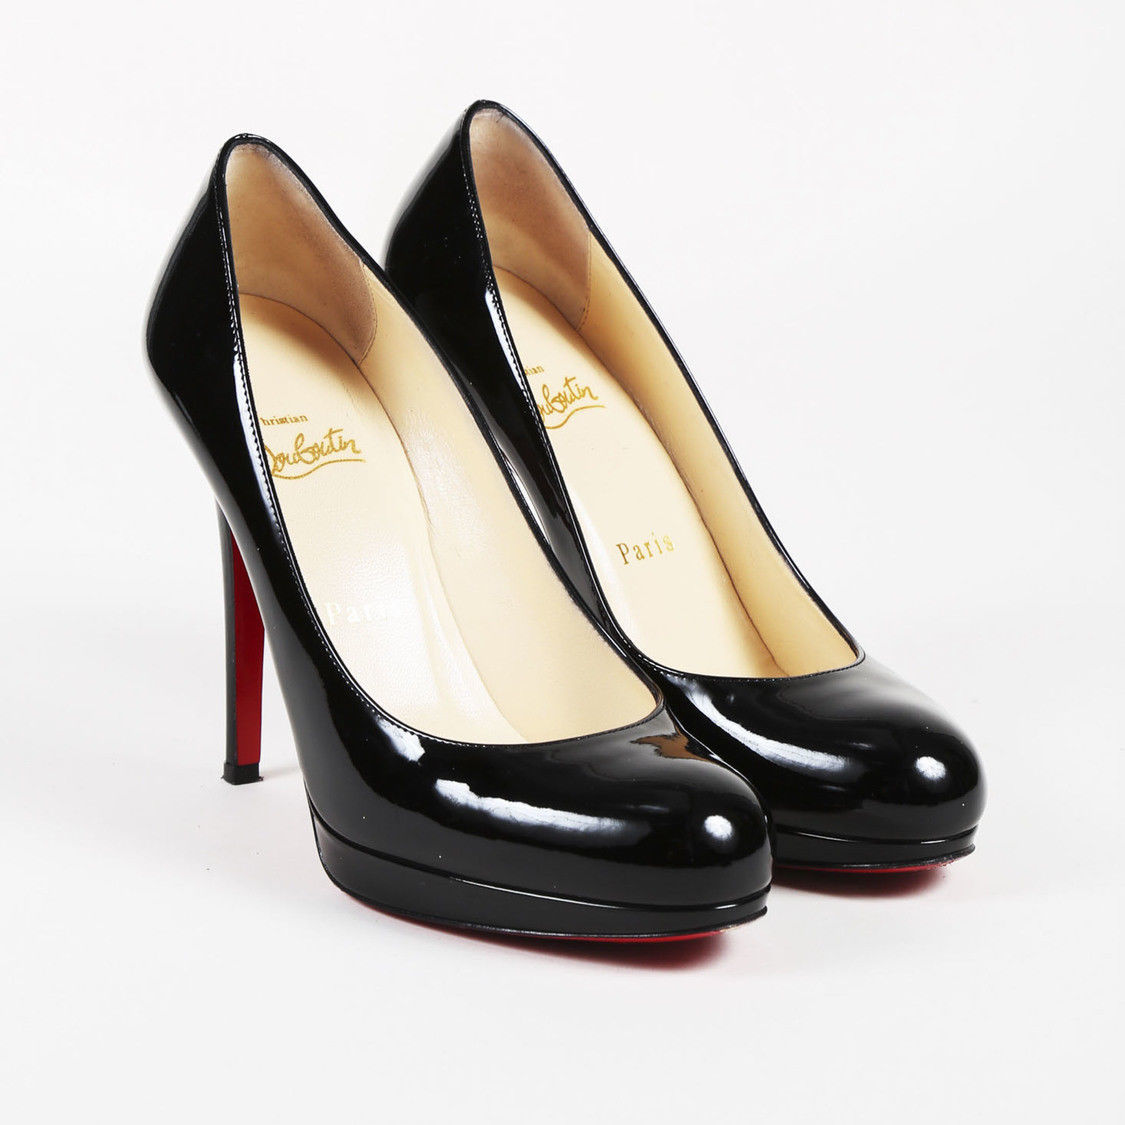 0923c4b168b Christian Louboutin Black Patent Leather